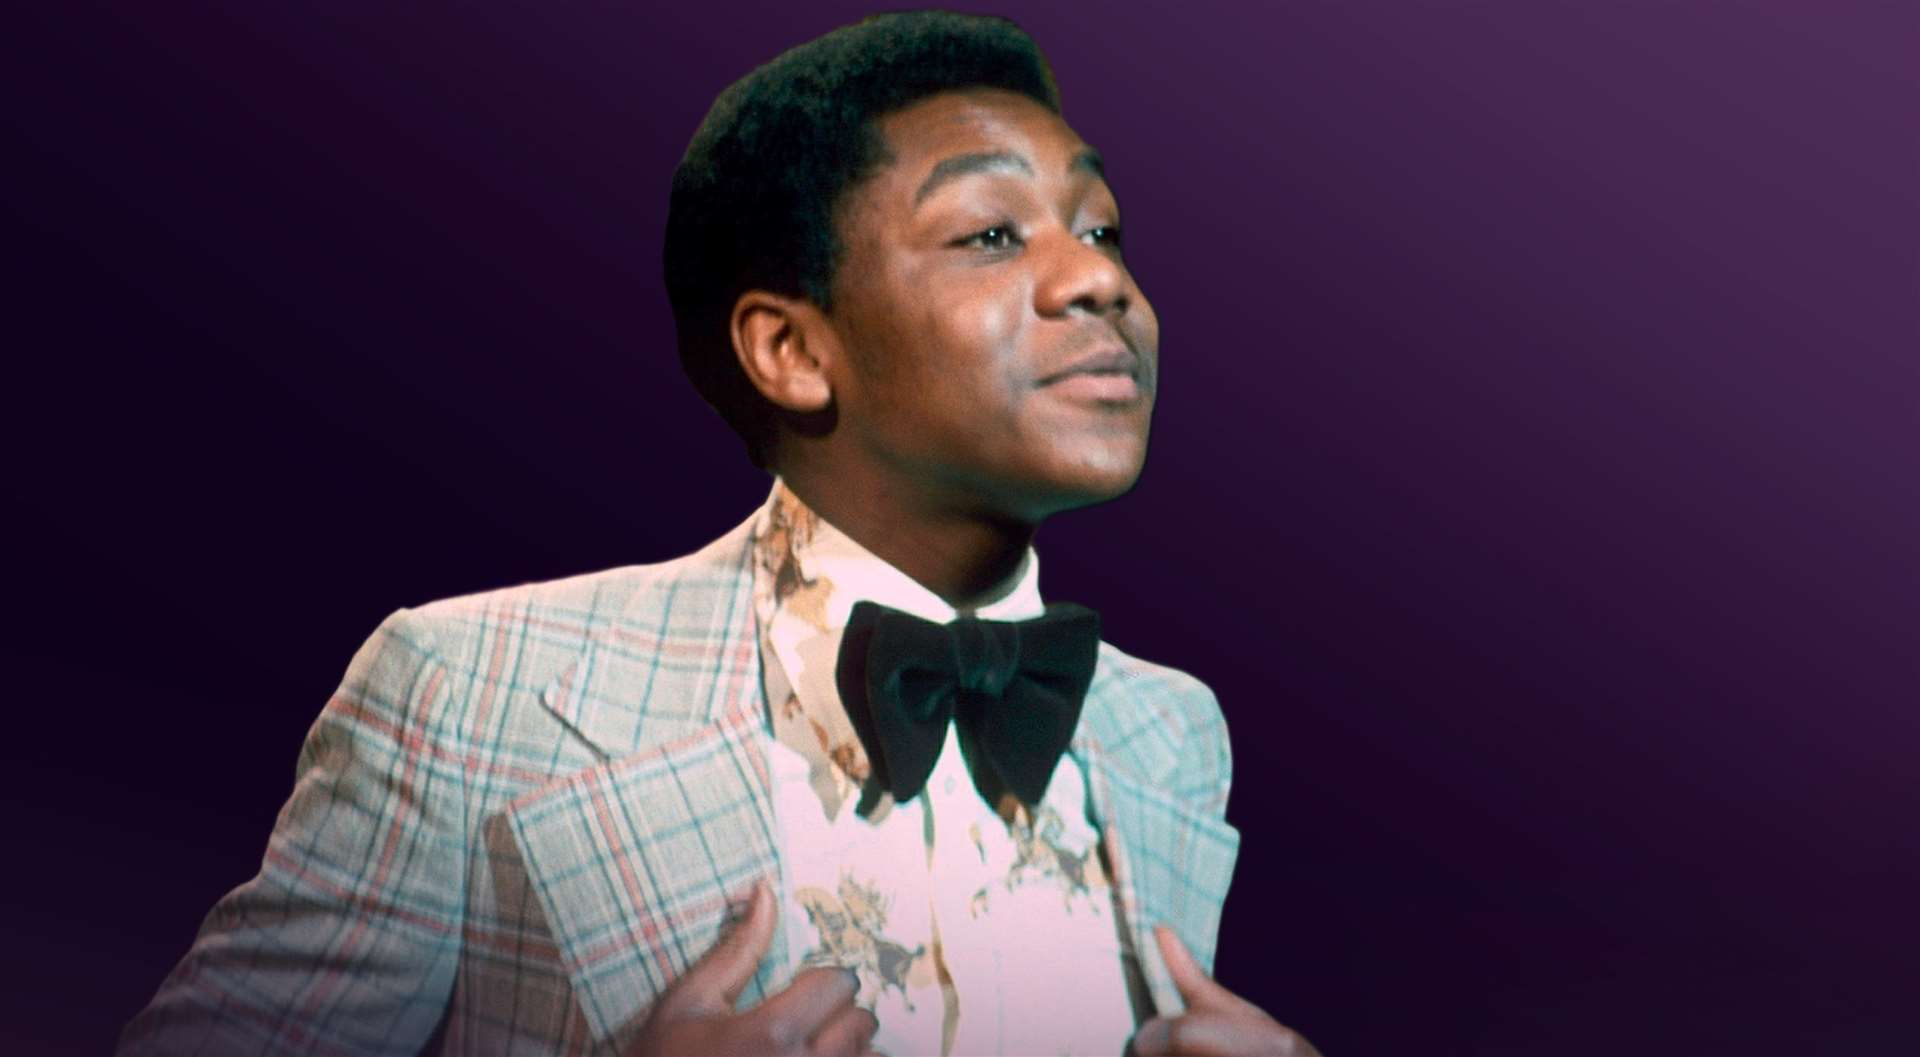 Lenny Henry will perform in Tunbridge Wells this autumn